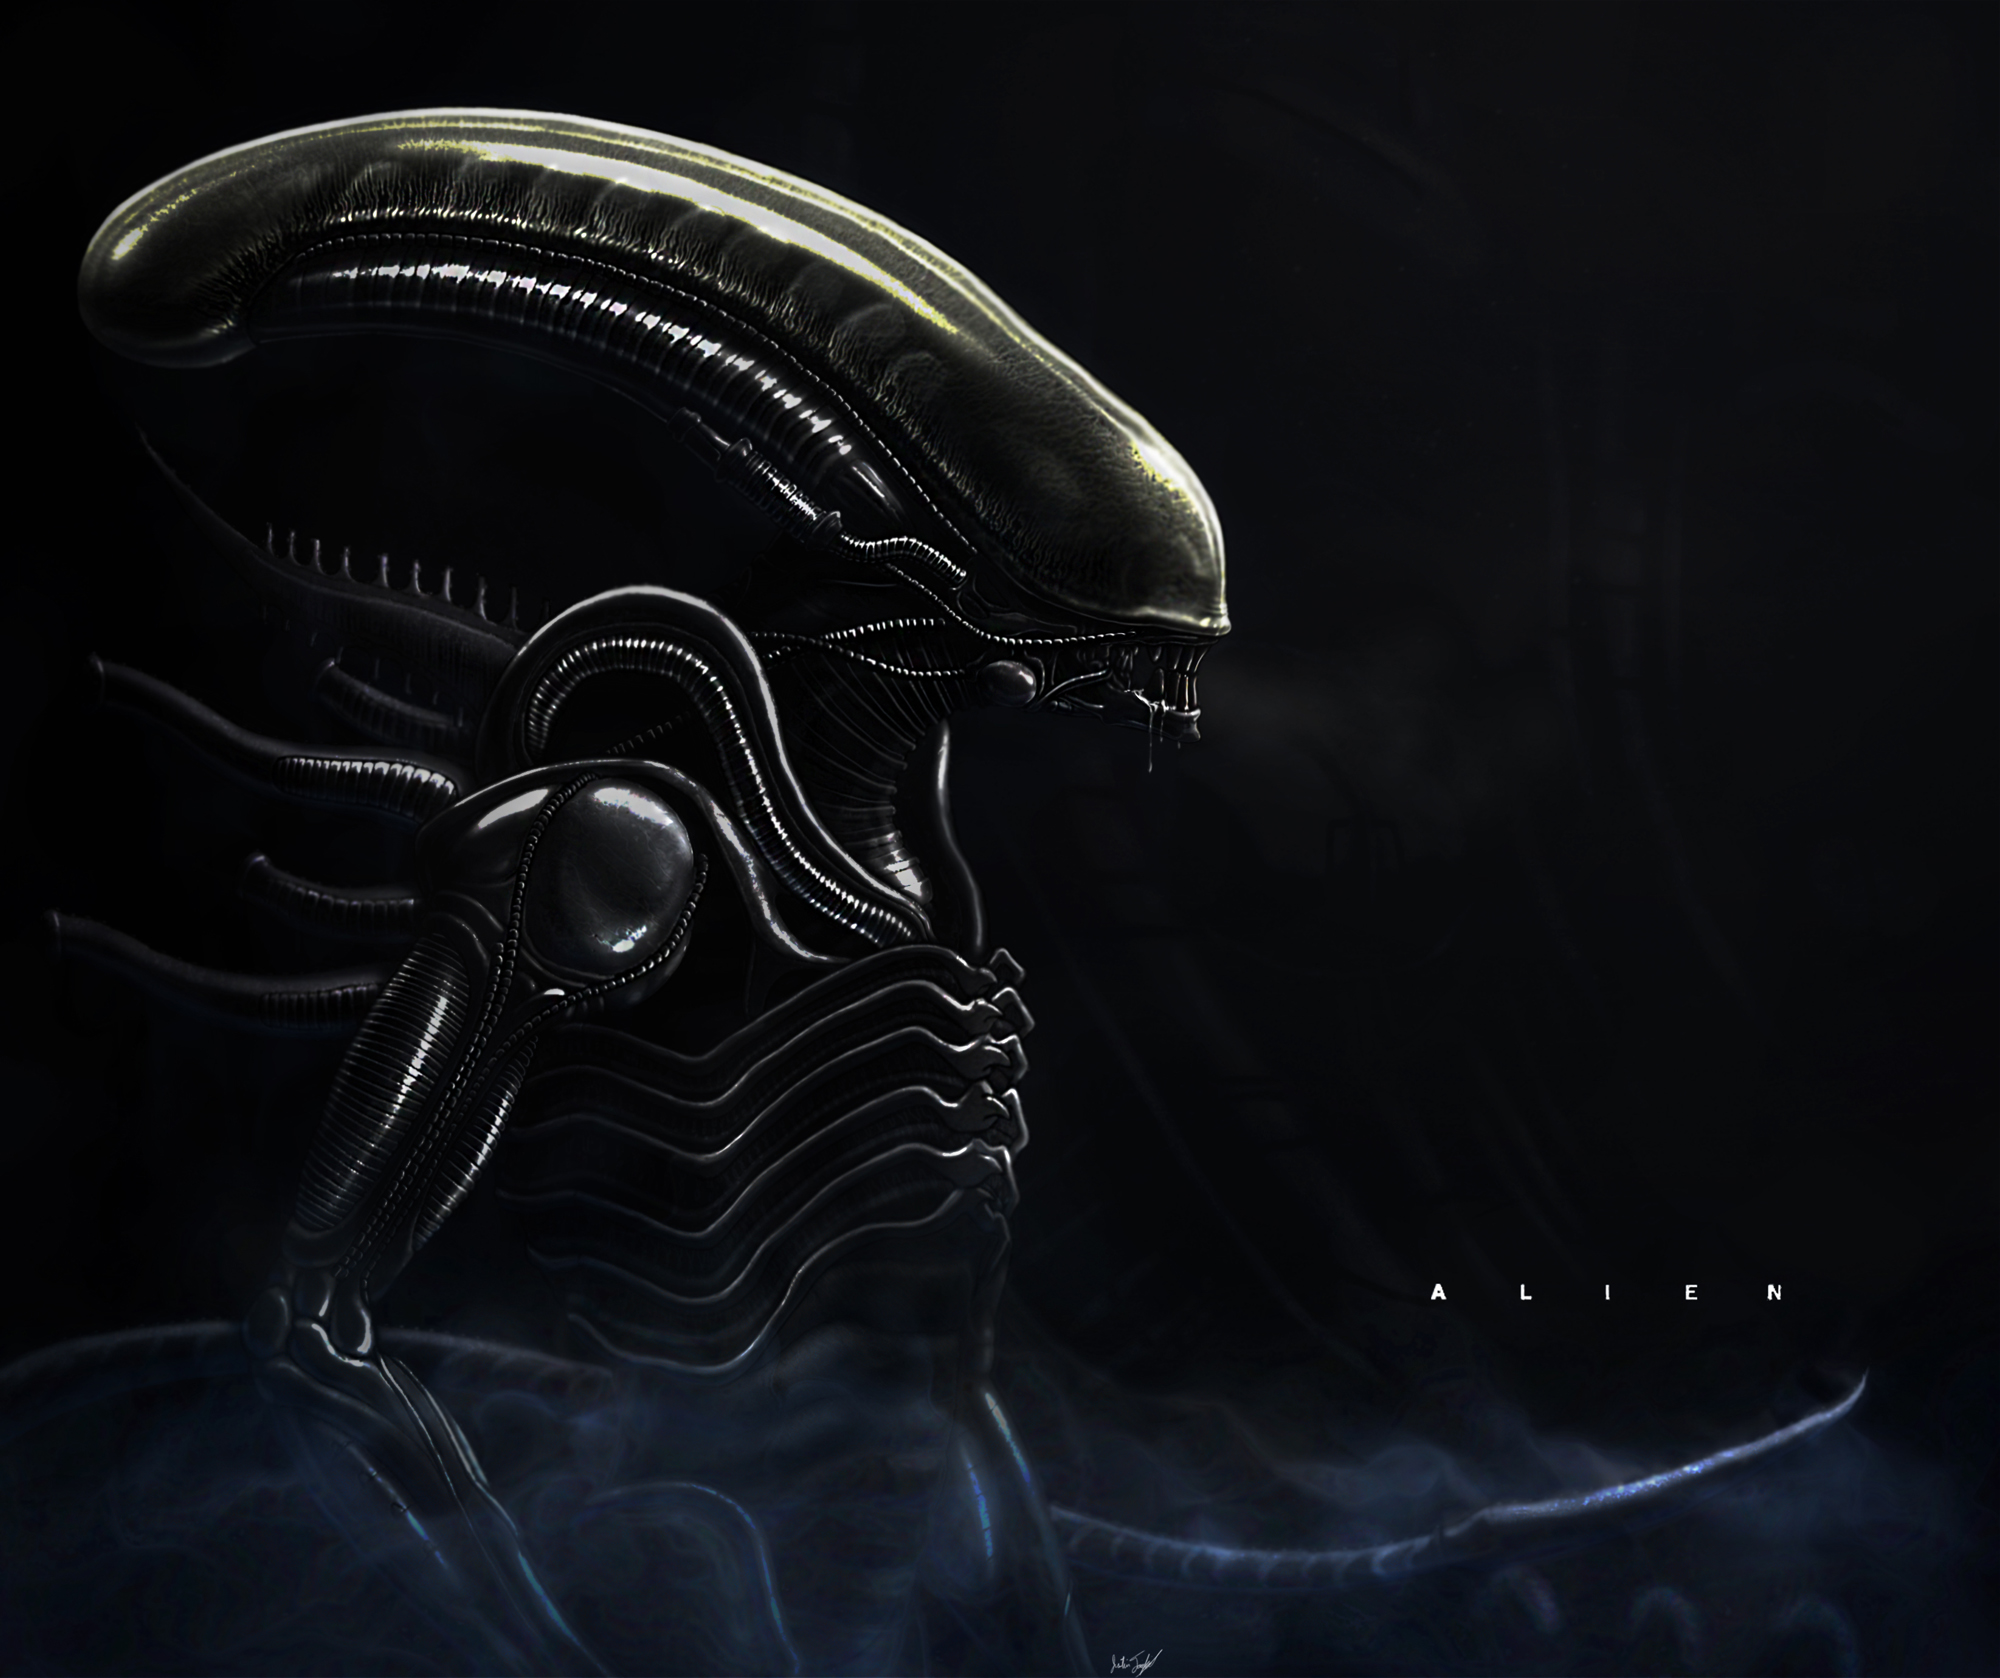 Alien by Methuselah3000